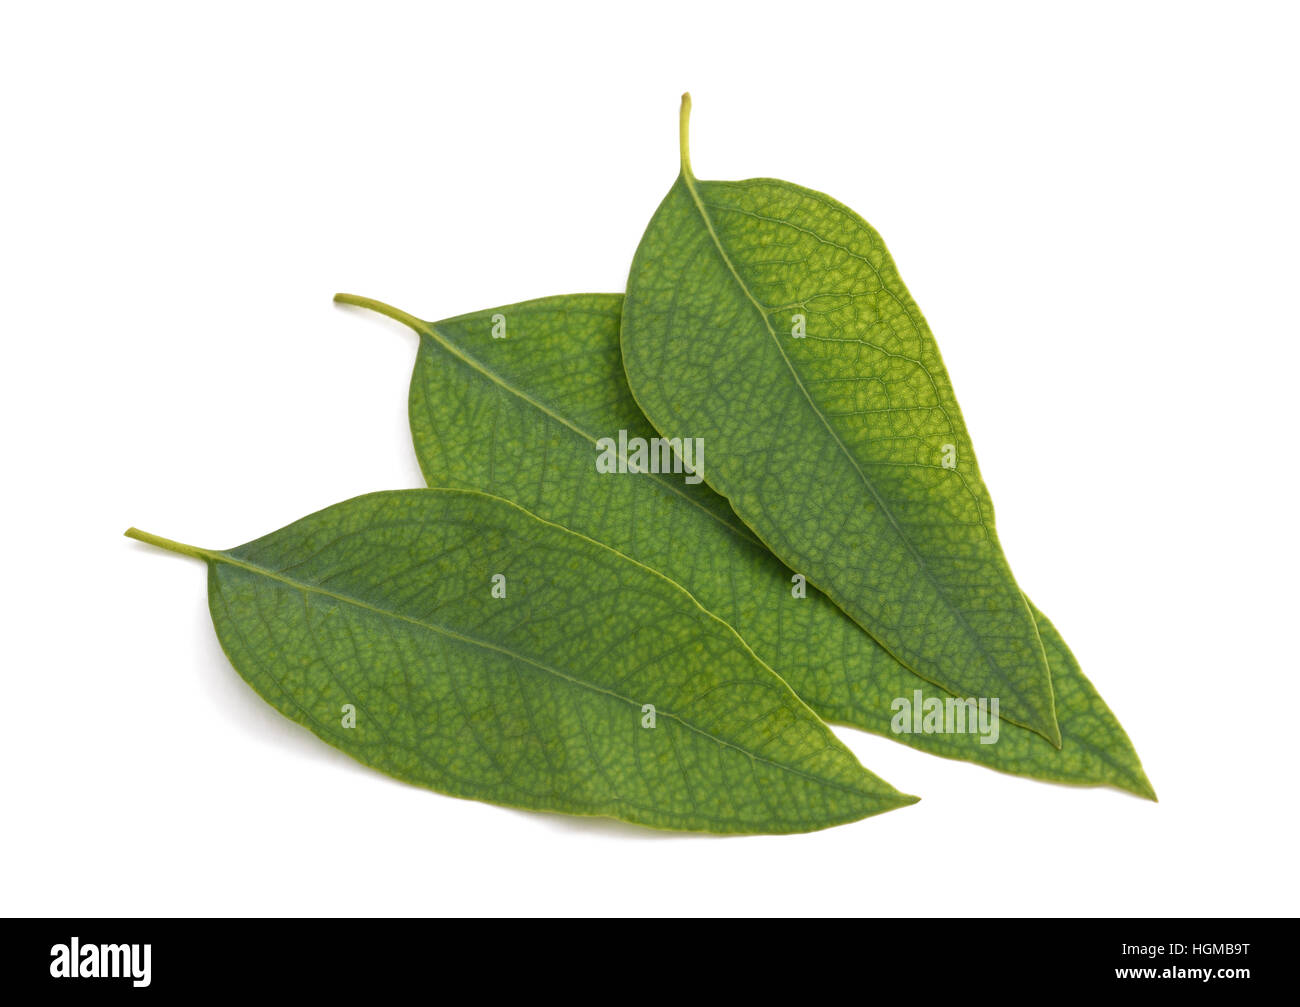 eucalyptus leaves isolated on a white background - Stock Image